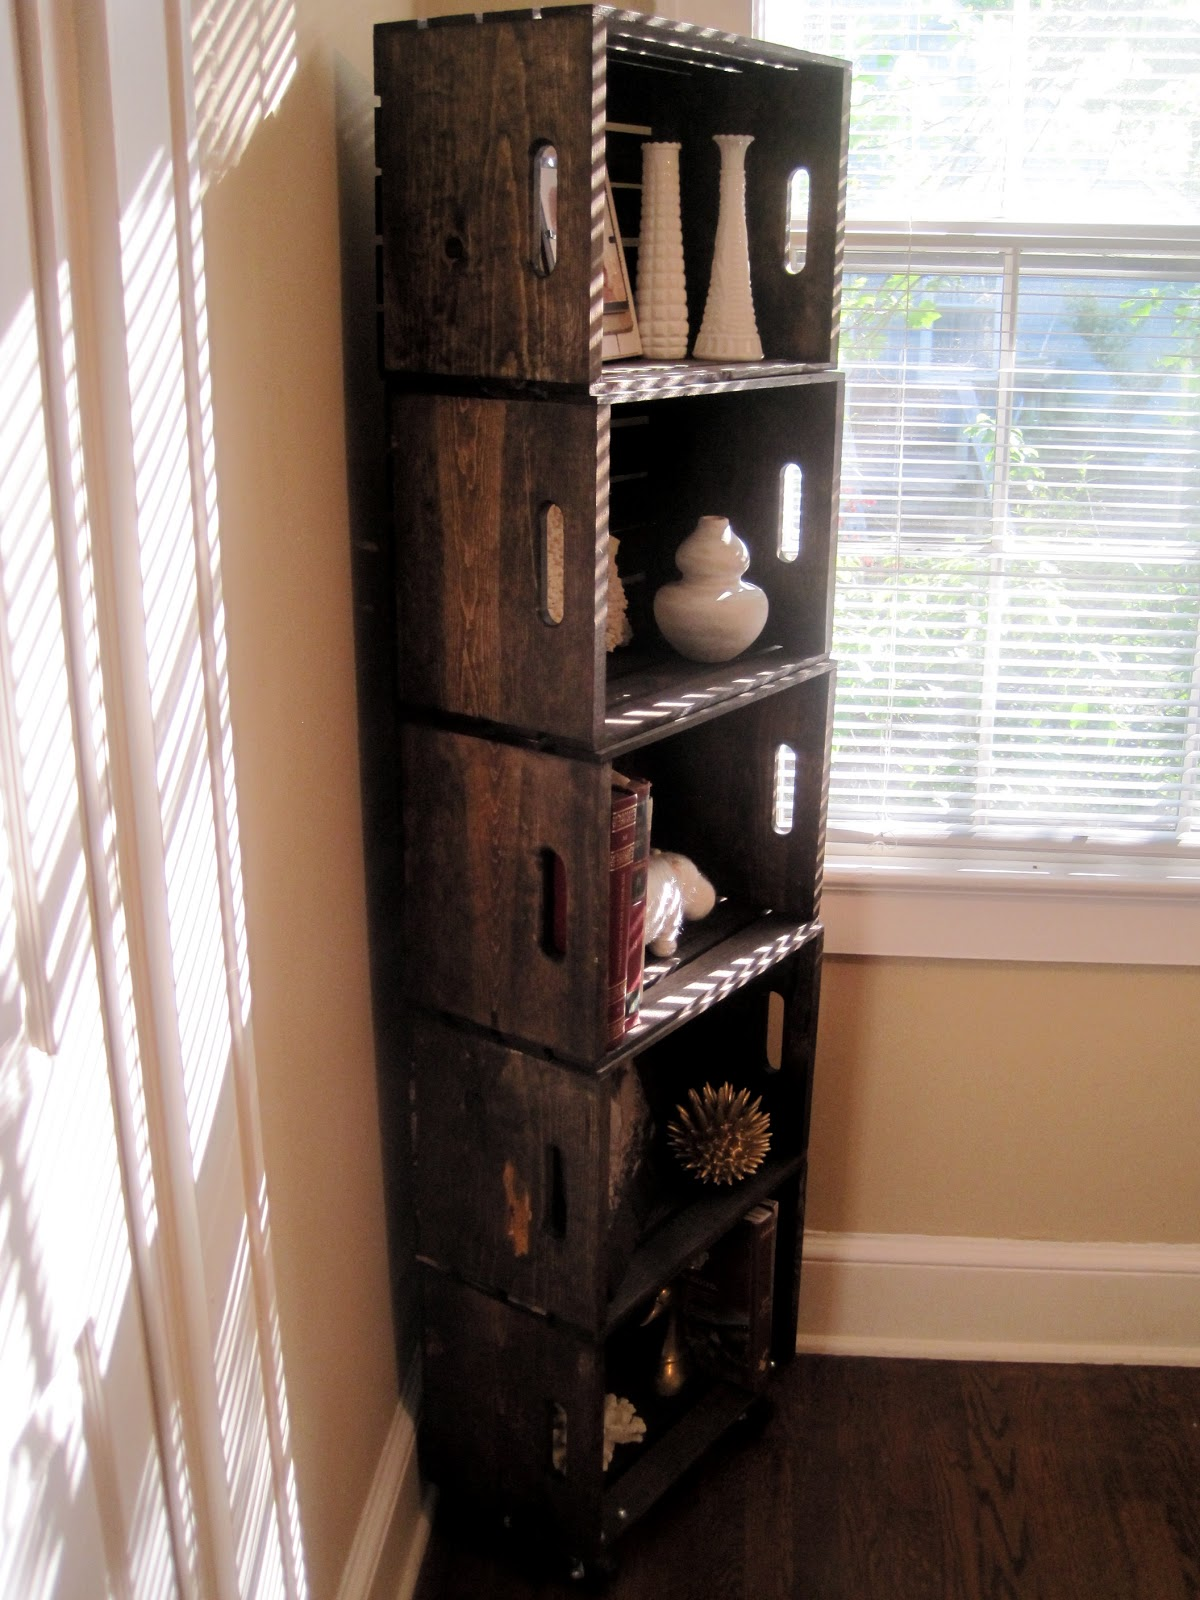 Southern diy diary wood crate bookshelf how to for Diy wooden crate ideas